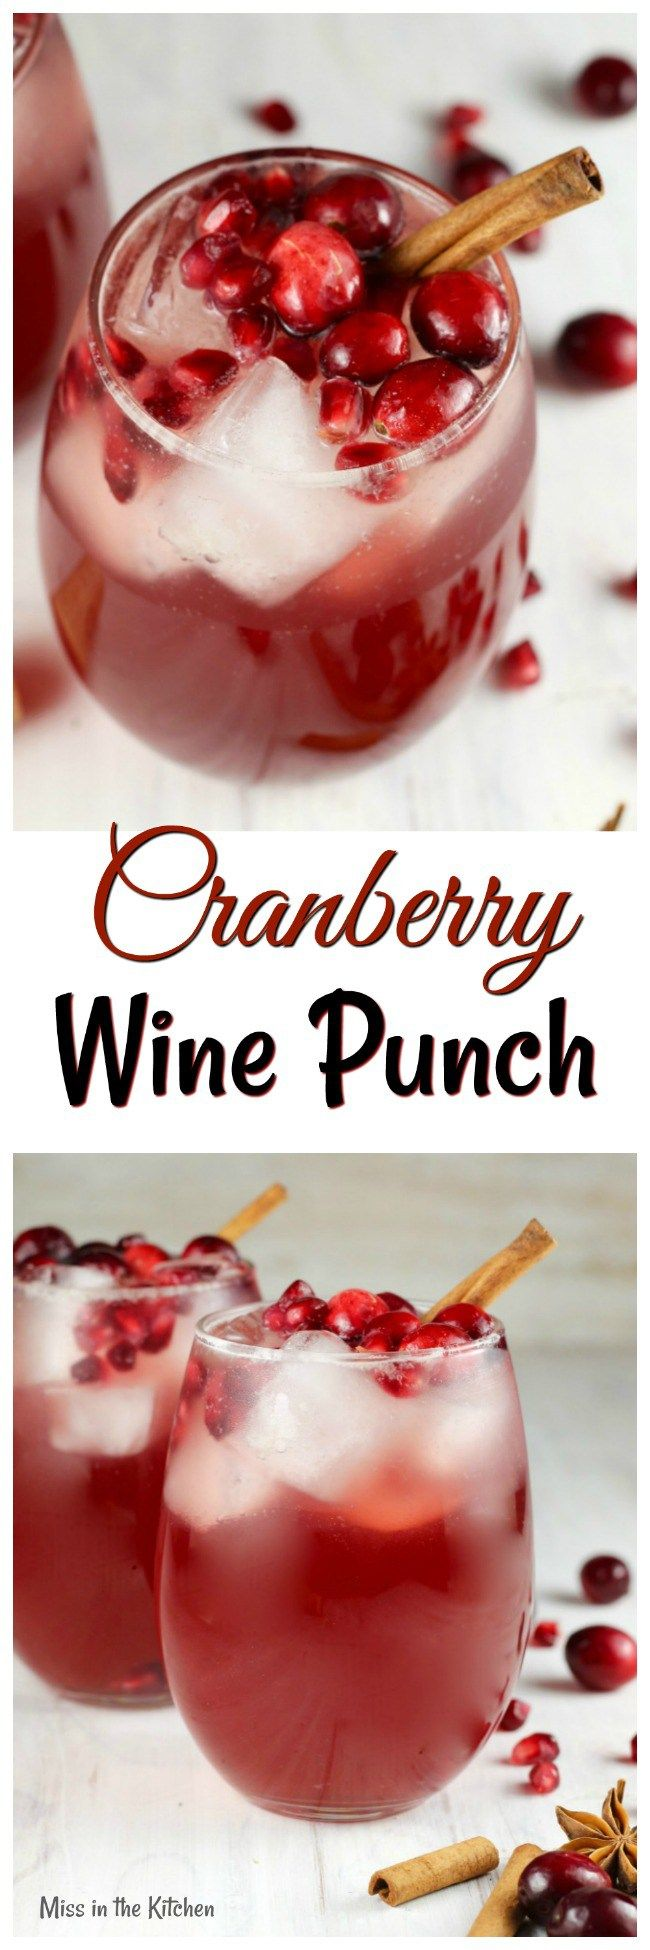 Cranberry Wine Punch Recipe Easy Large Batch White Wine Cocktail Perfect For Parties Missinthekitchen Com A With Images Wine Punch Wine Punch Recipes Cranberry Wine